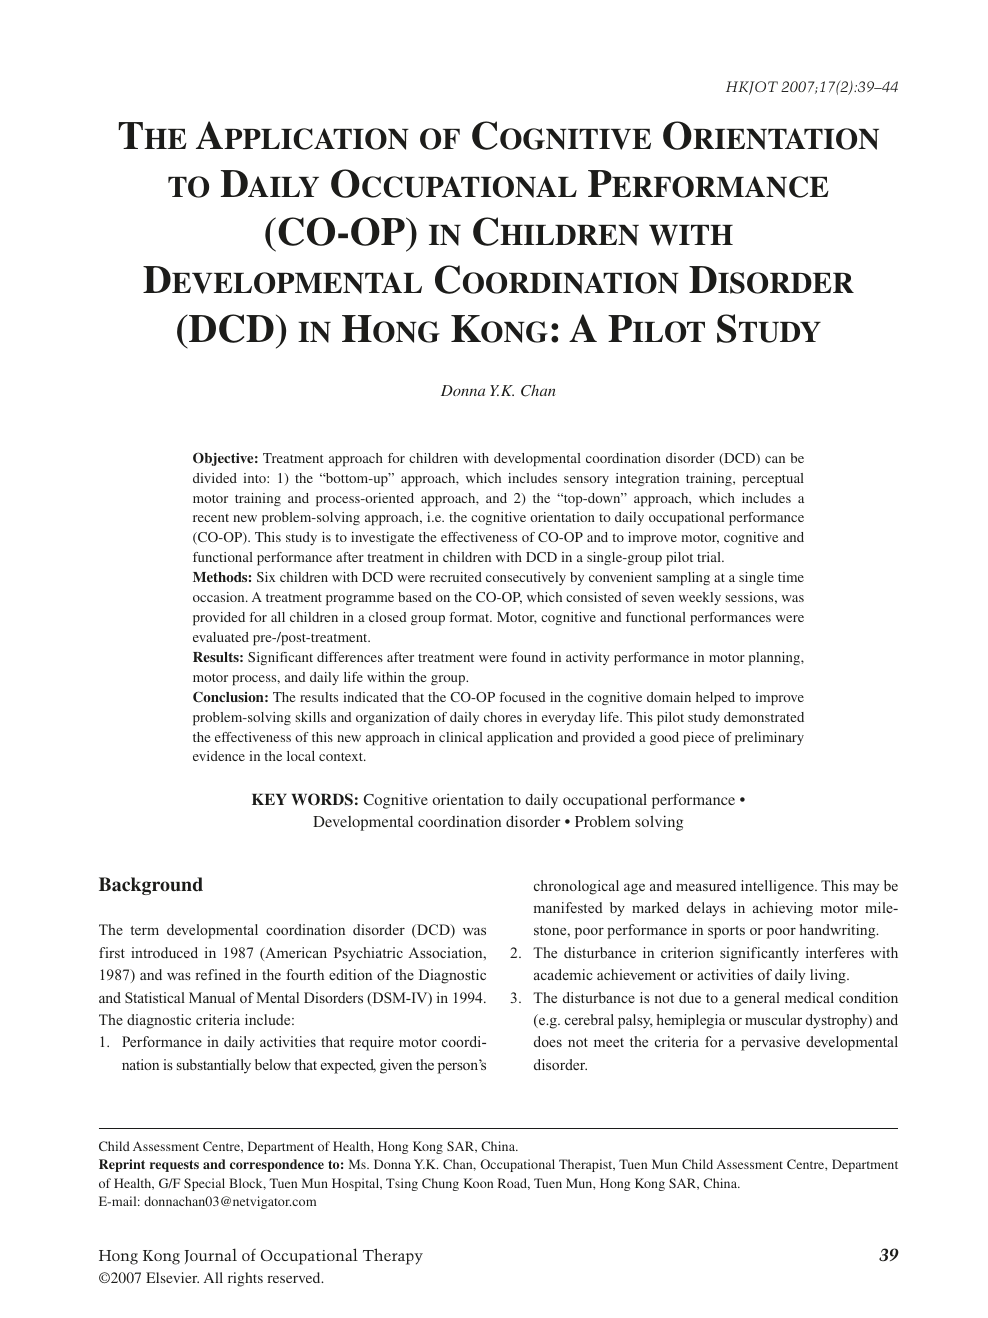 The Application Of Cognitive Orientation To Daily Occupational Performance Co Op In Children With Developmental Coordination Disorder Dcd In Hong Kong A Pilot Study Topic Of Research Paper In Psychology Download Scholarly